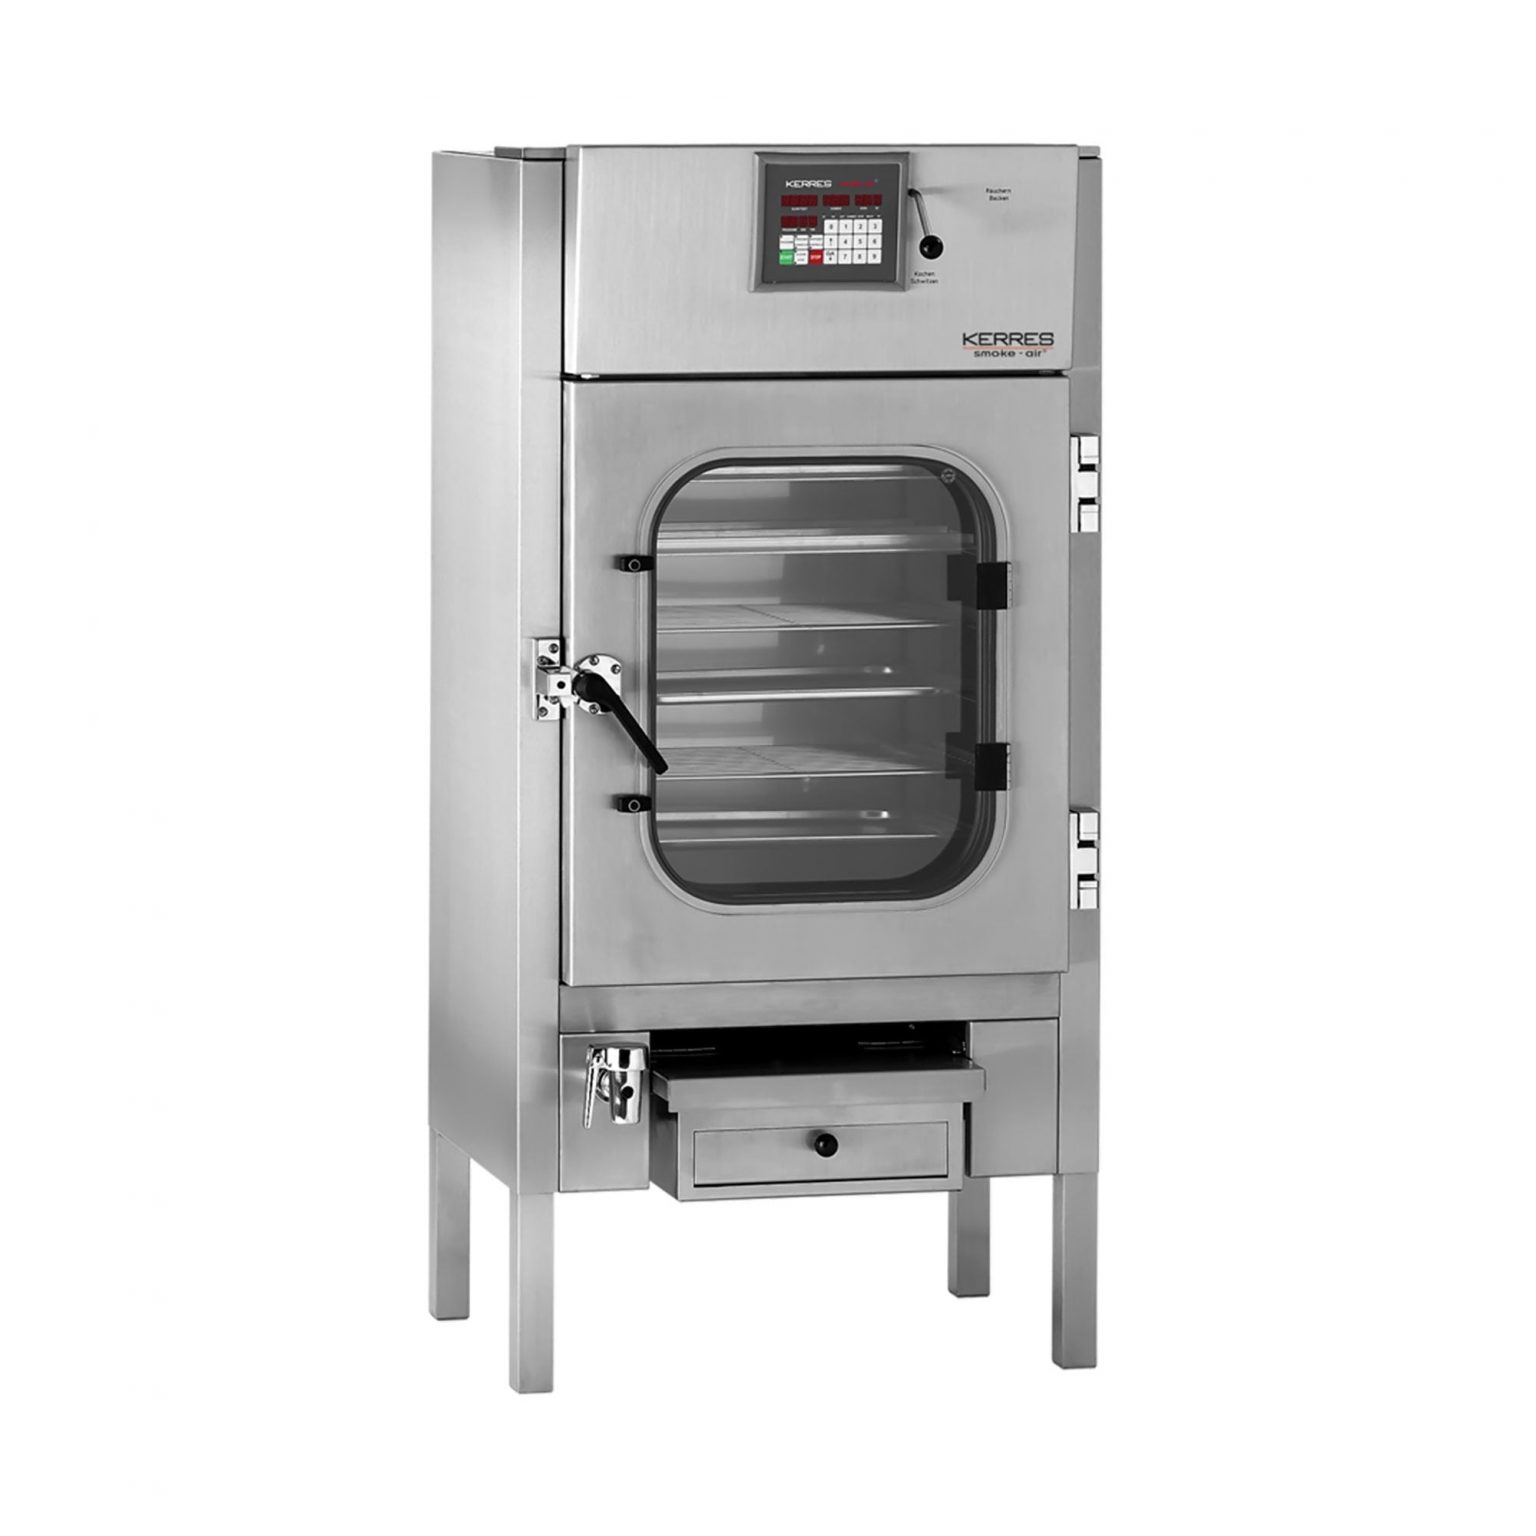 defufumadora-e-fogao-combo-oven-cs-350-smoking-roasting-and-steam-cooker-isolutions-portugal